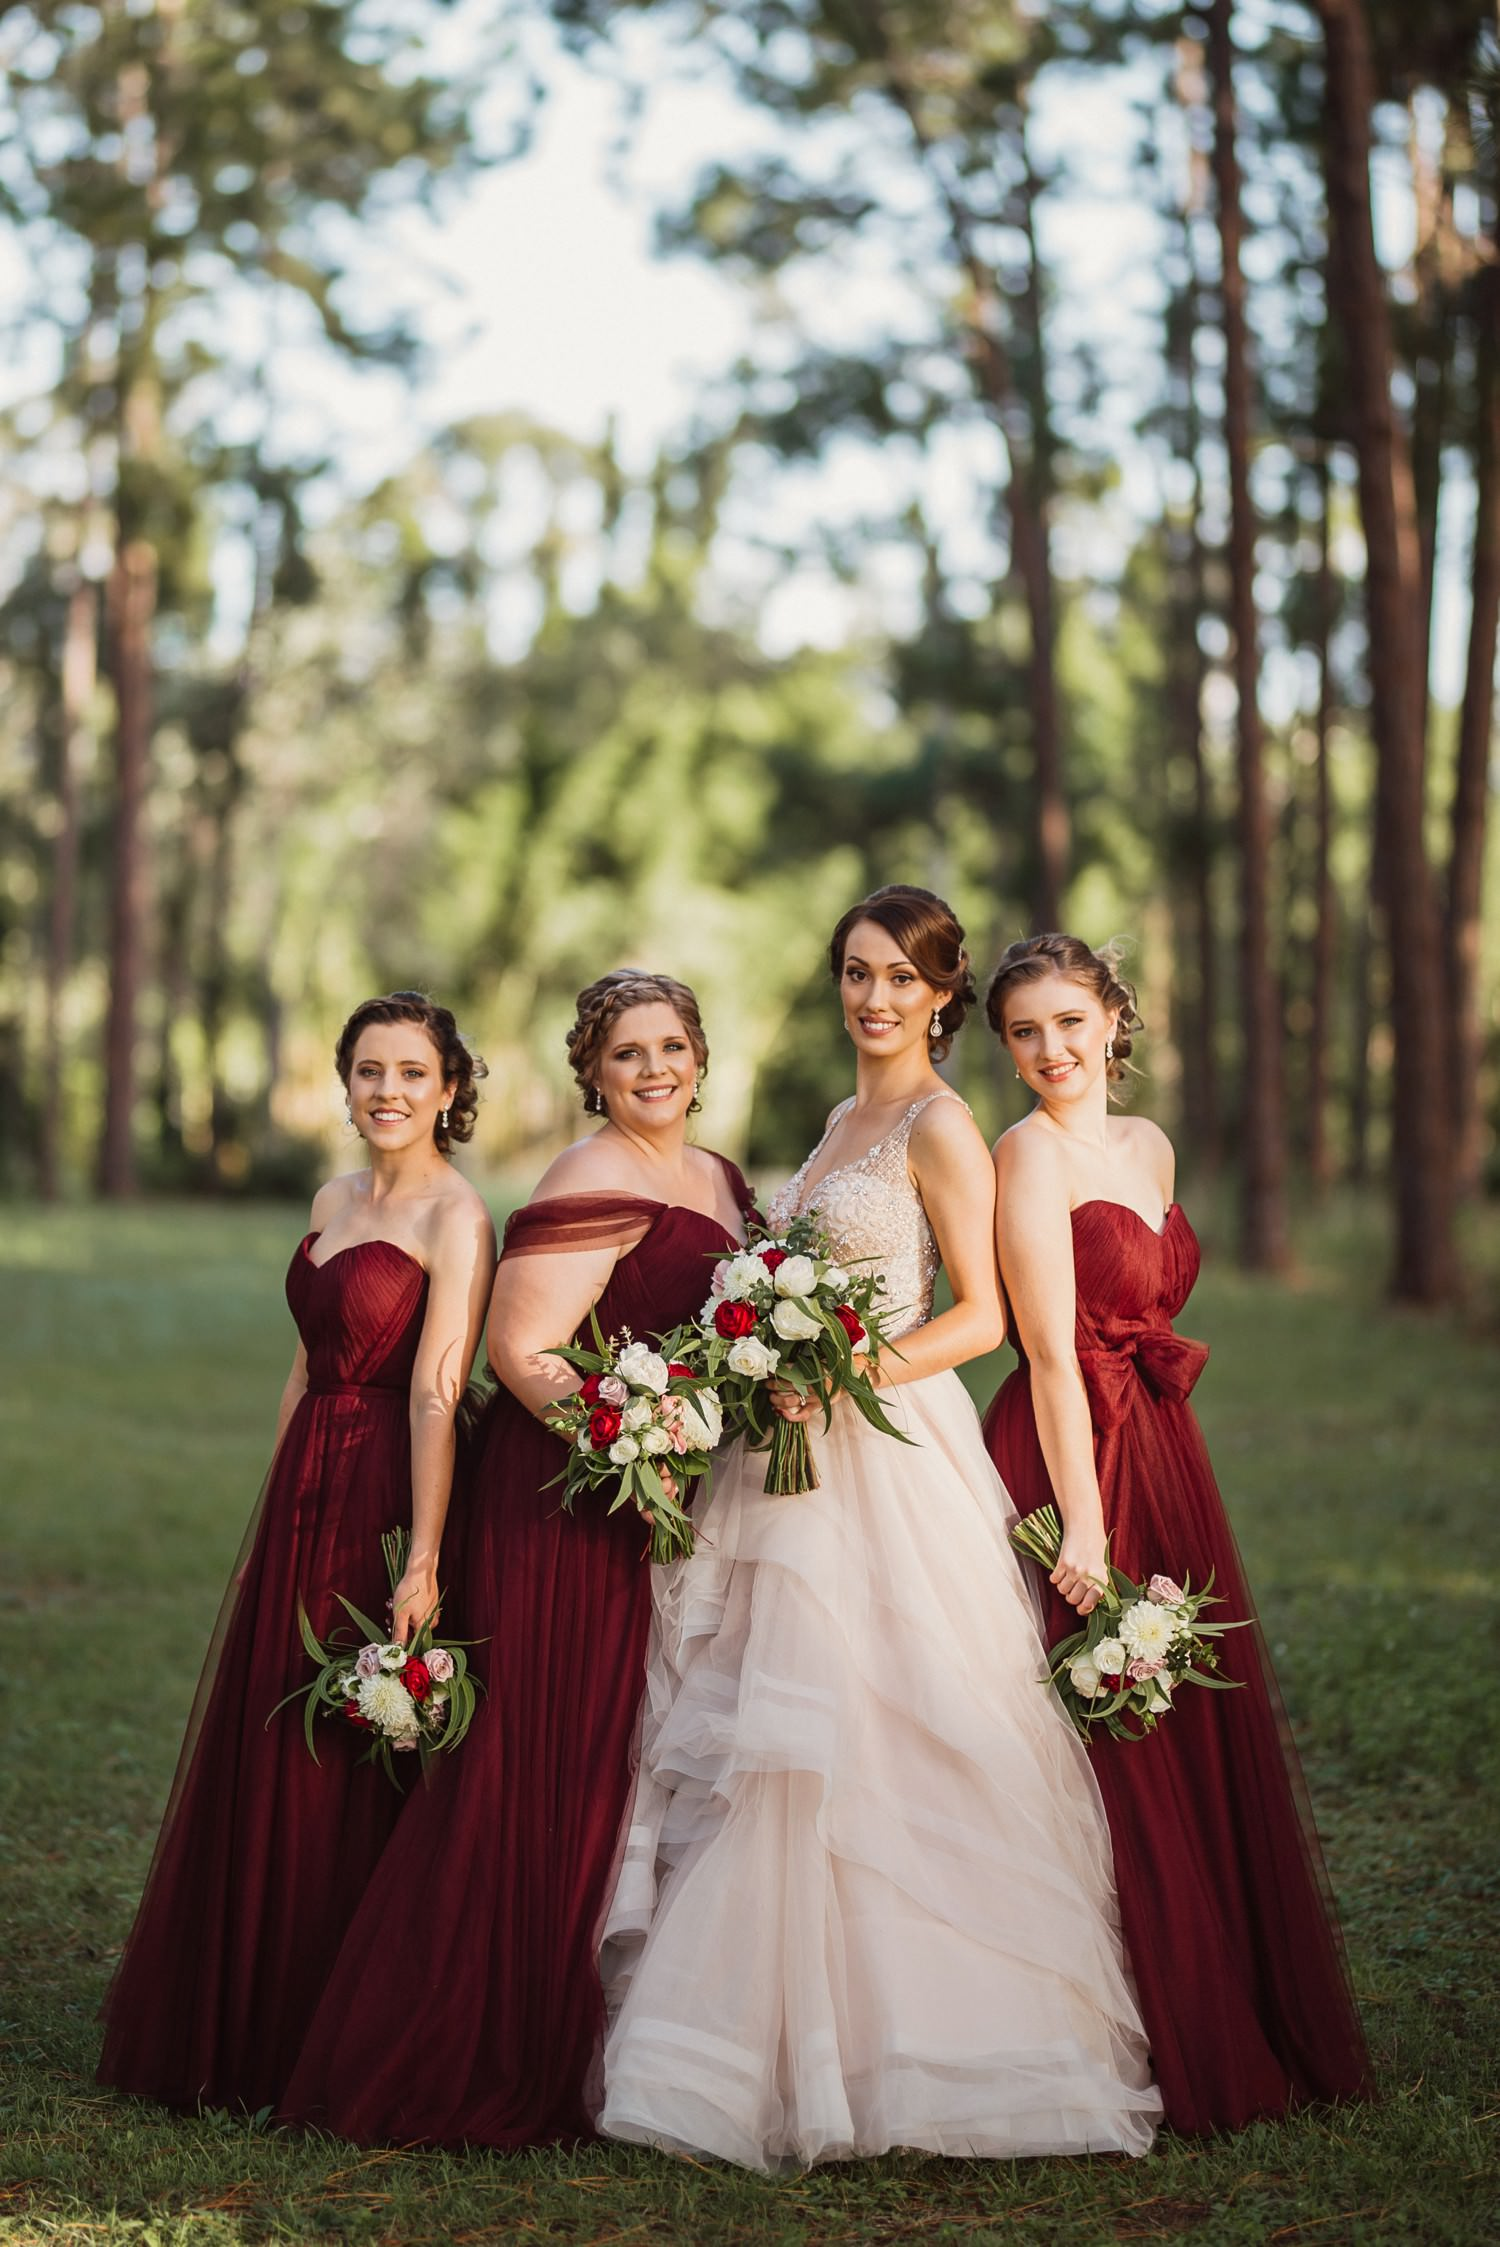 Bride with bridesmaids wearing merlot coloured dresses